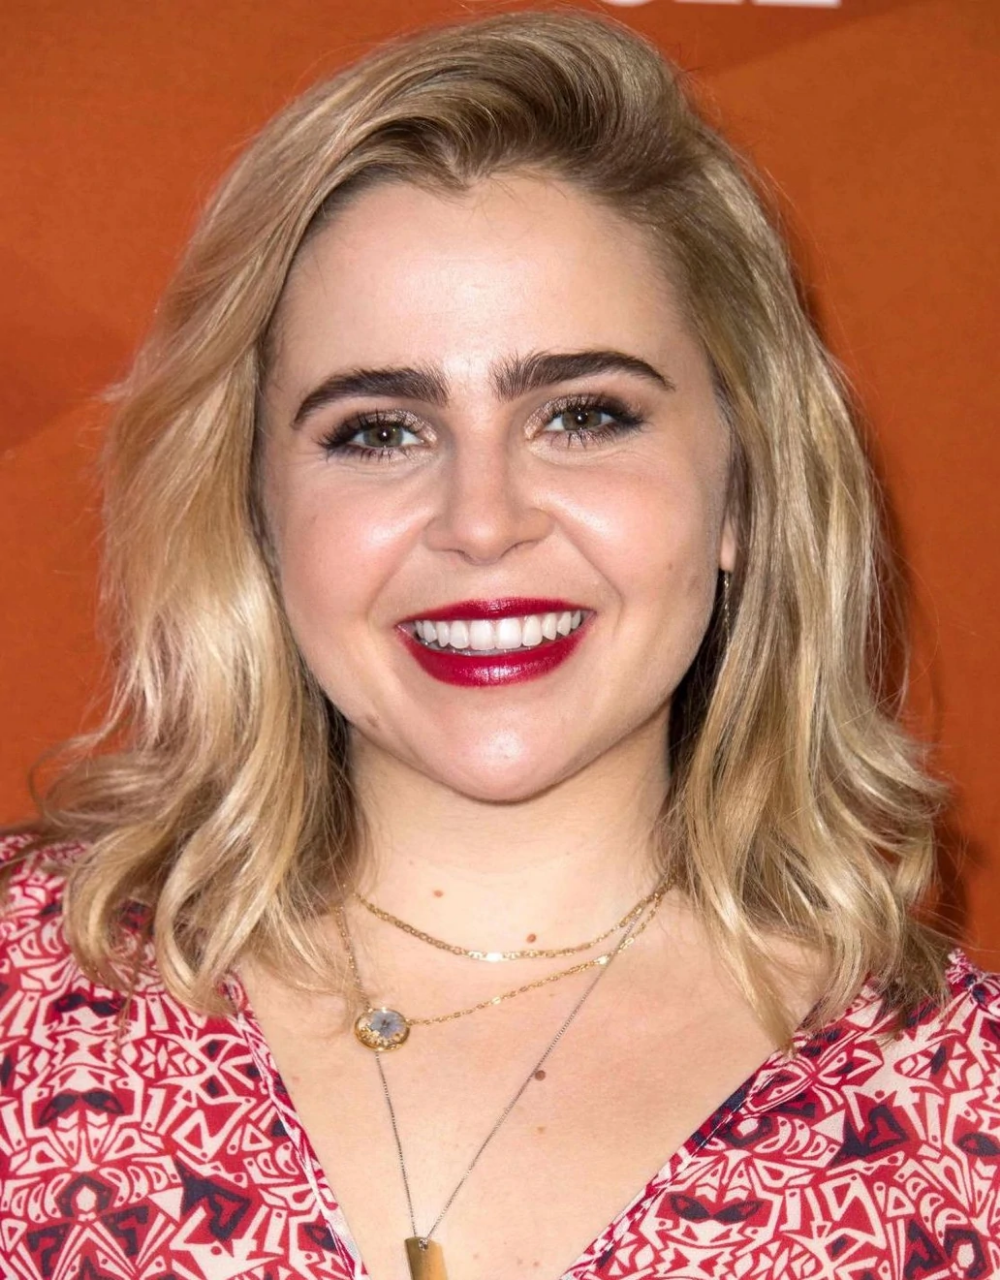 Mae Whitman Disney Wiki Fandom Powered By Wikia Mae Whitman Whitman Cool Girl Comedian josh potter joins nikki and anya marina to chat about getting dissed by smart people, making the first move and the. pinterest